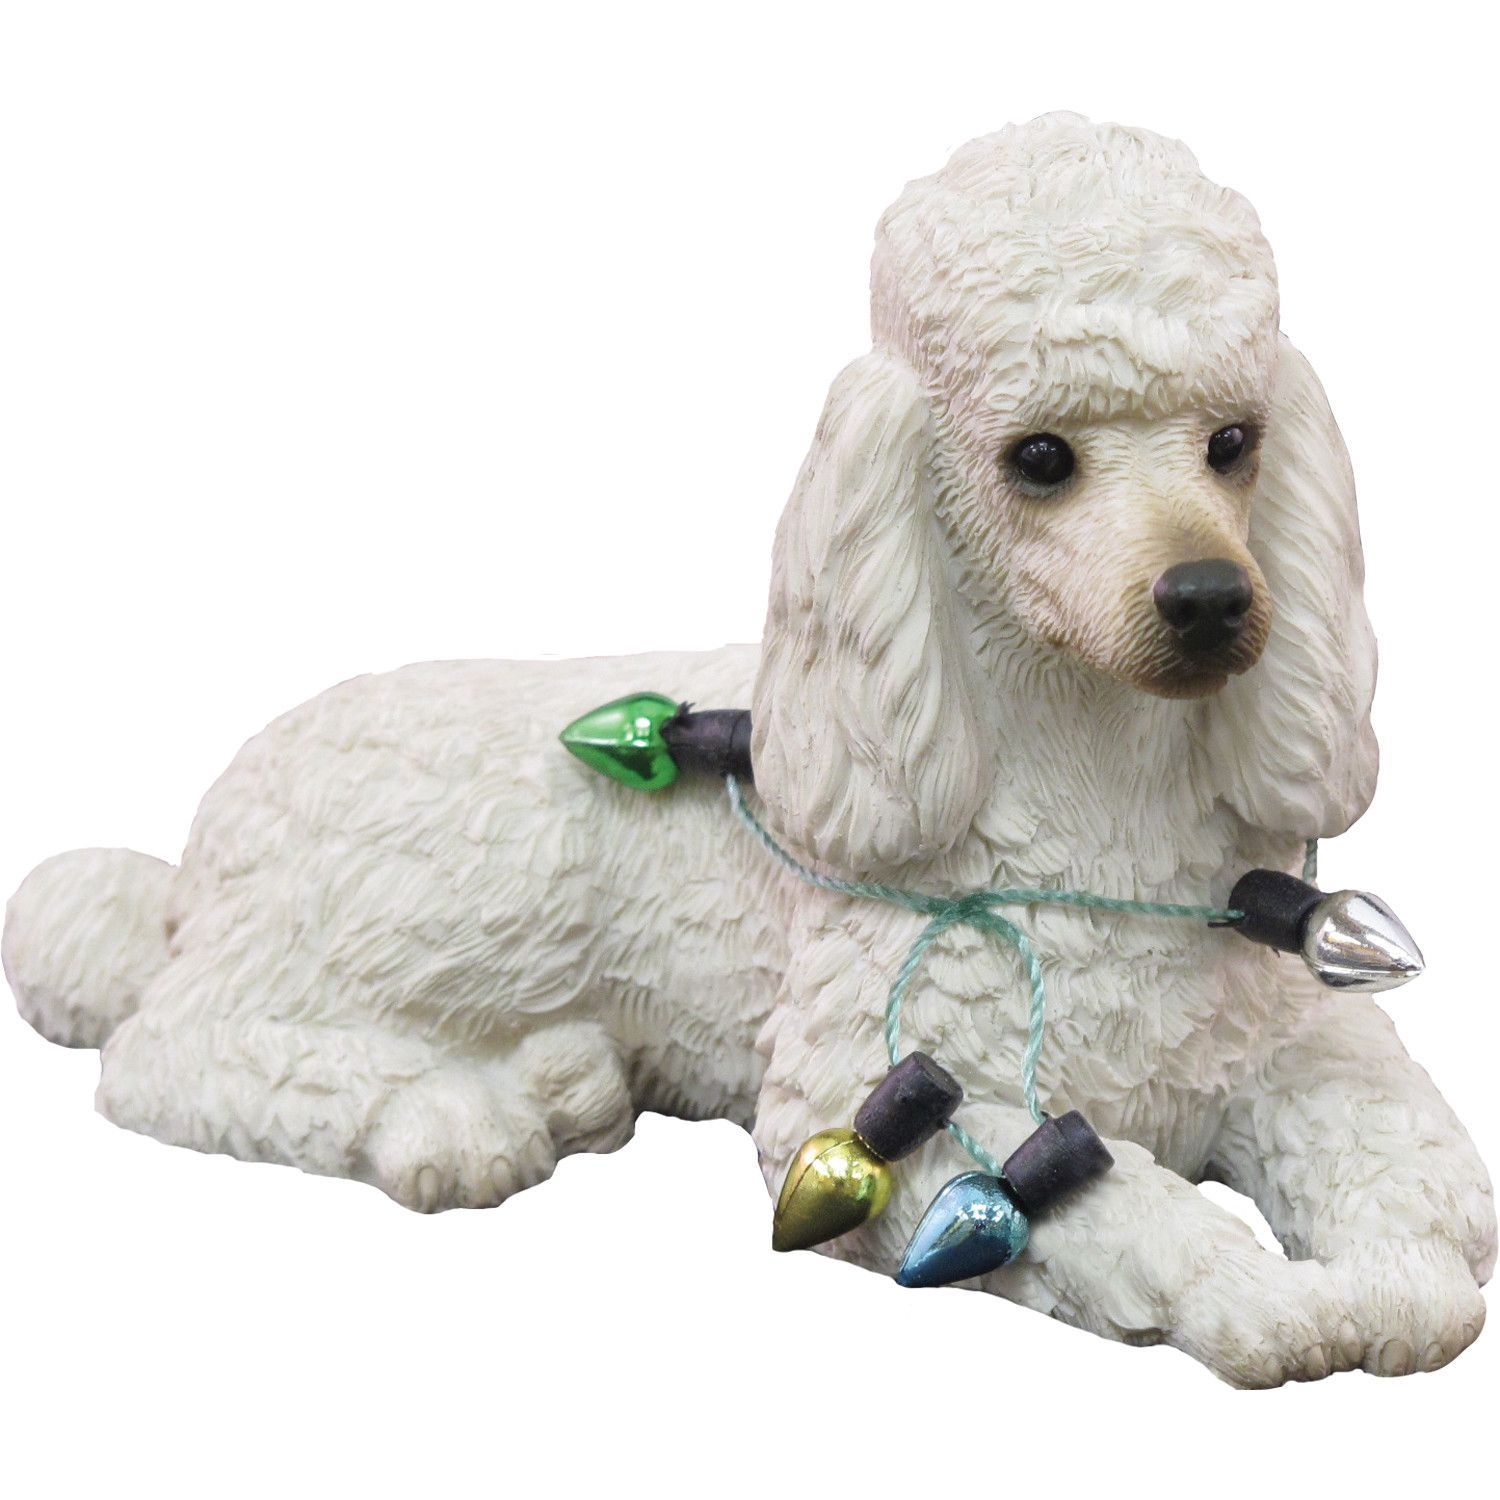 Features: -Made from marble dust and polyresin. -Hand-cast and hand-painted. -Perfect gift for the dog lover in your life. -Ornaments collection. Product Type: -Hanging figurine. Theme: -Animal.